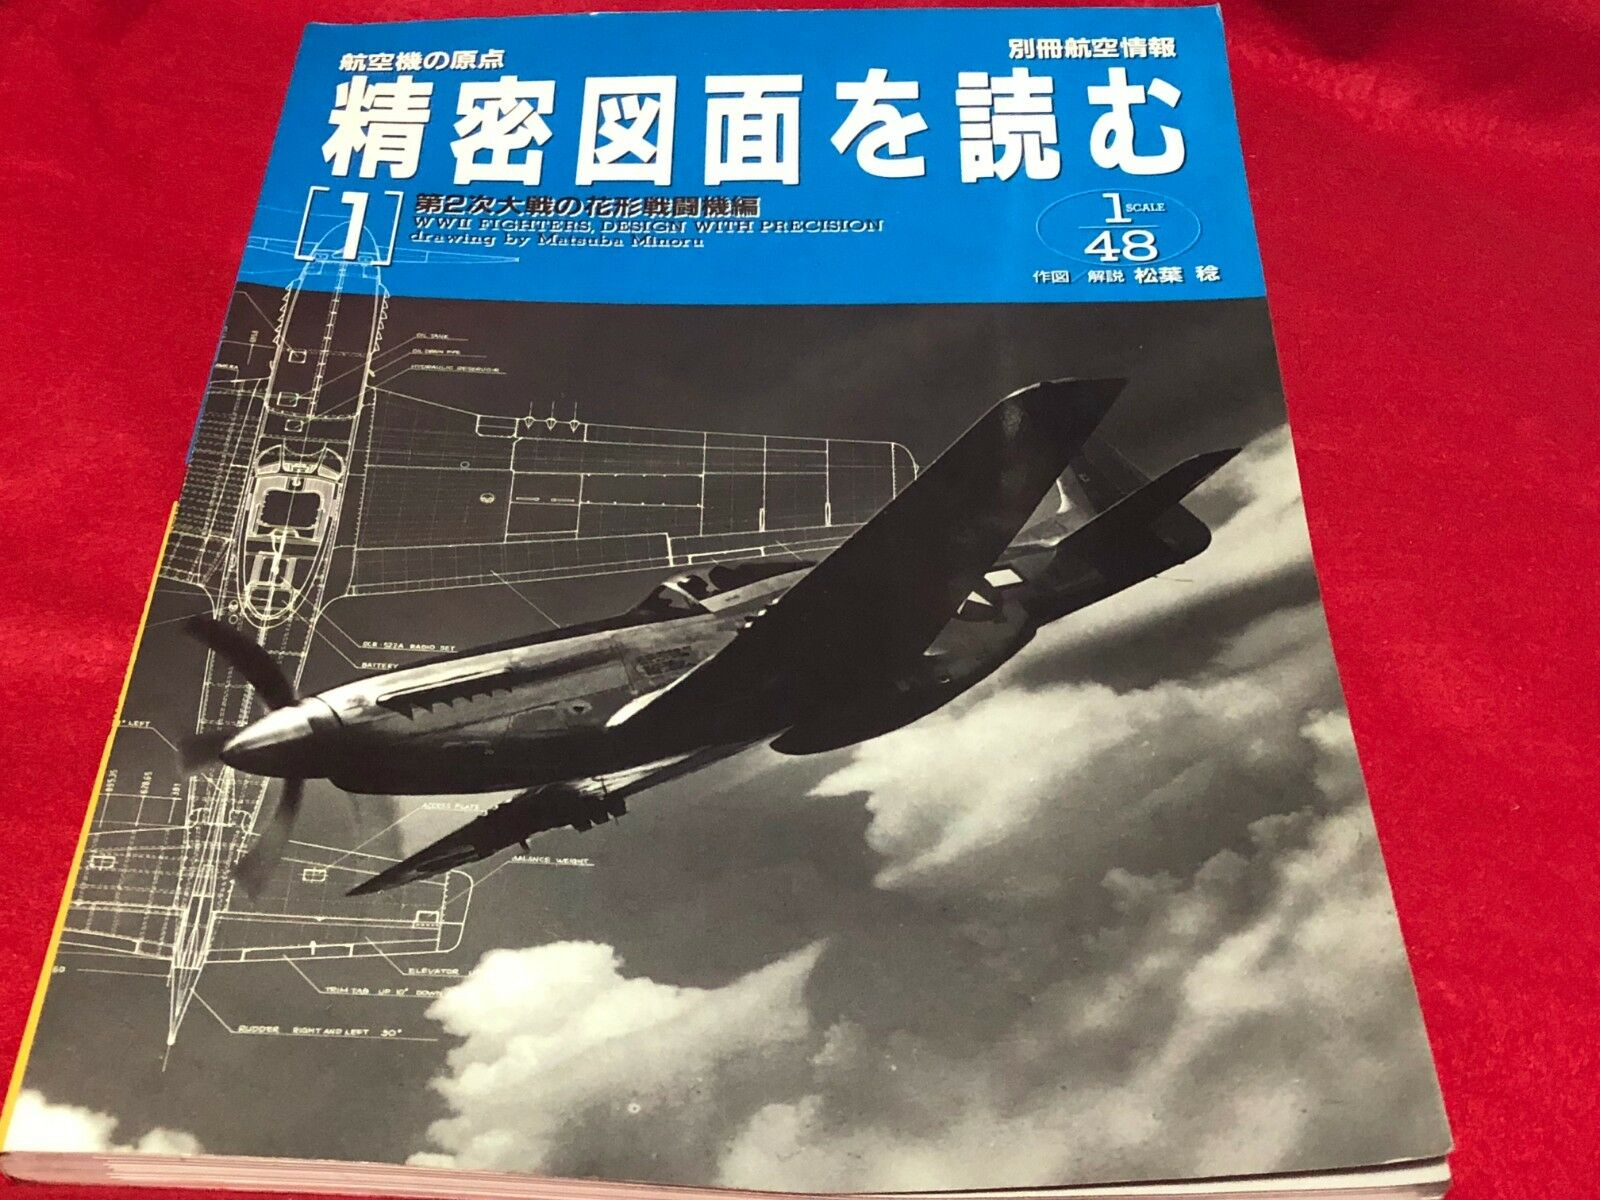 Design With Precision Drawing By M. Minoru W.W.II Fighters 1 48 Aircraft